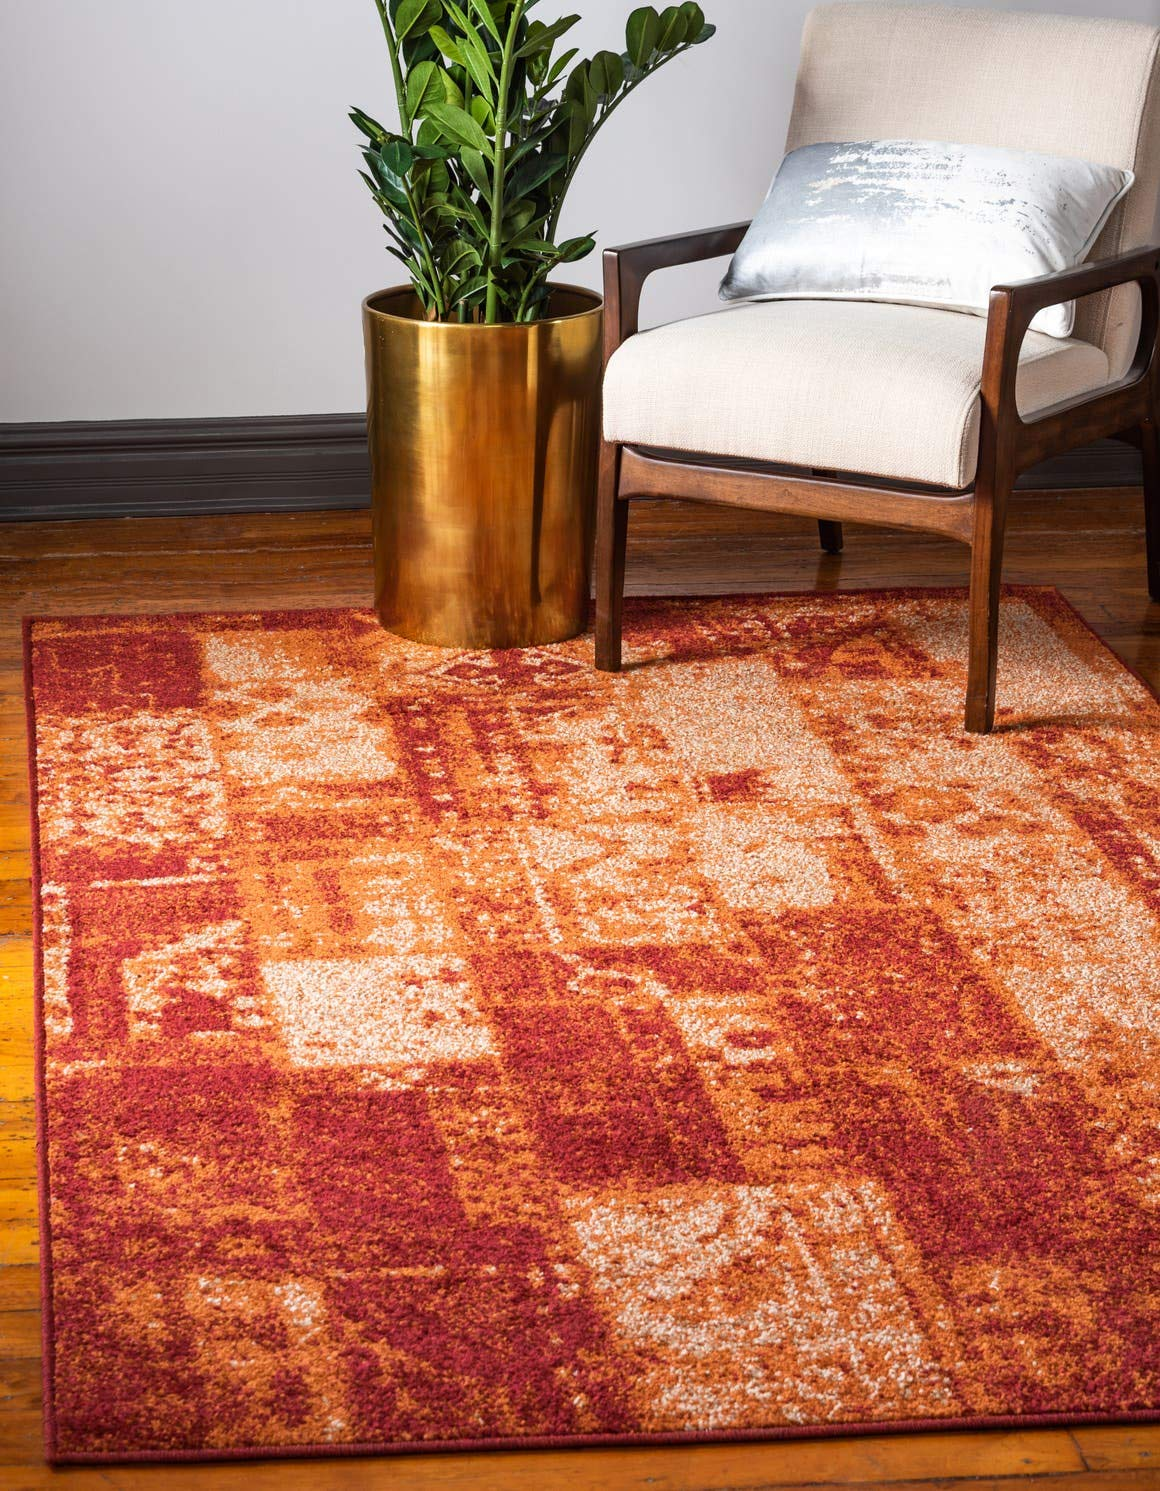 Unique Loom Autumn Collection Vintage Rustic Casual Warm Toned Terracotta Area Rug 5 0 x 8 0